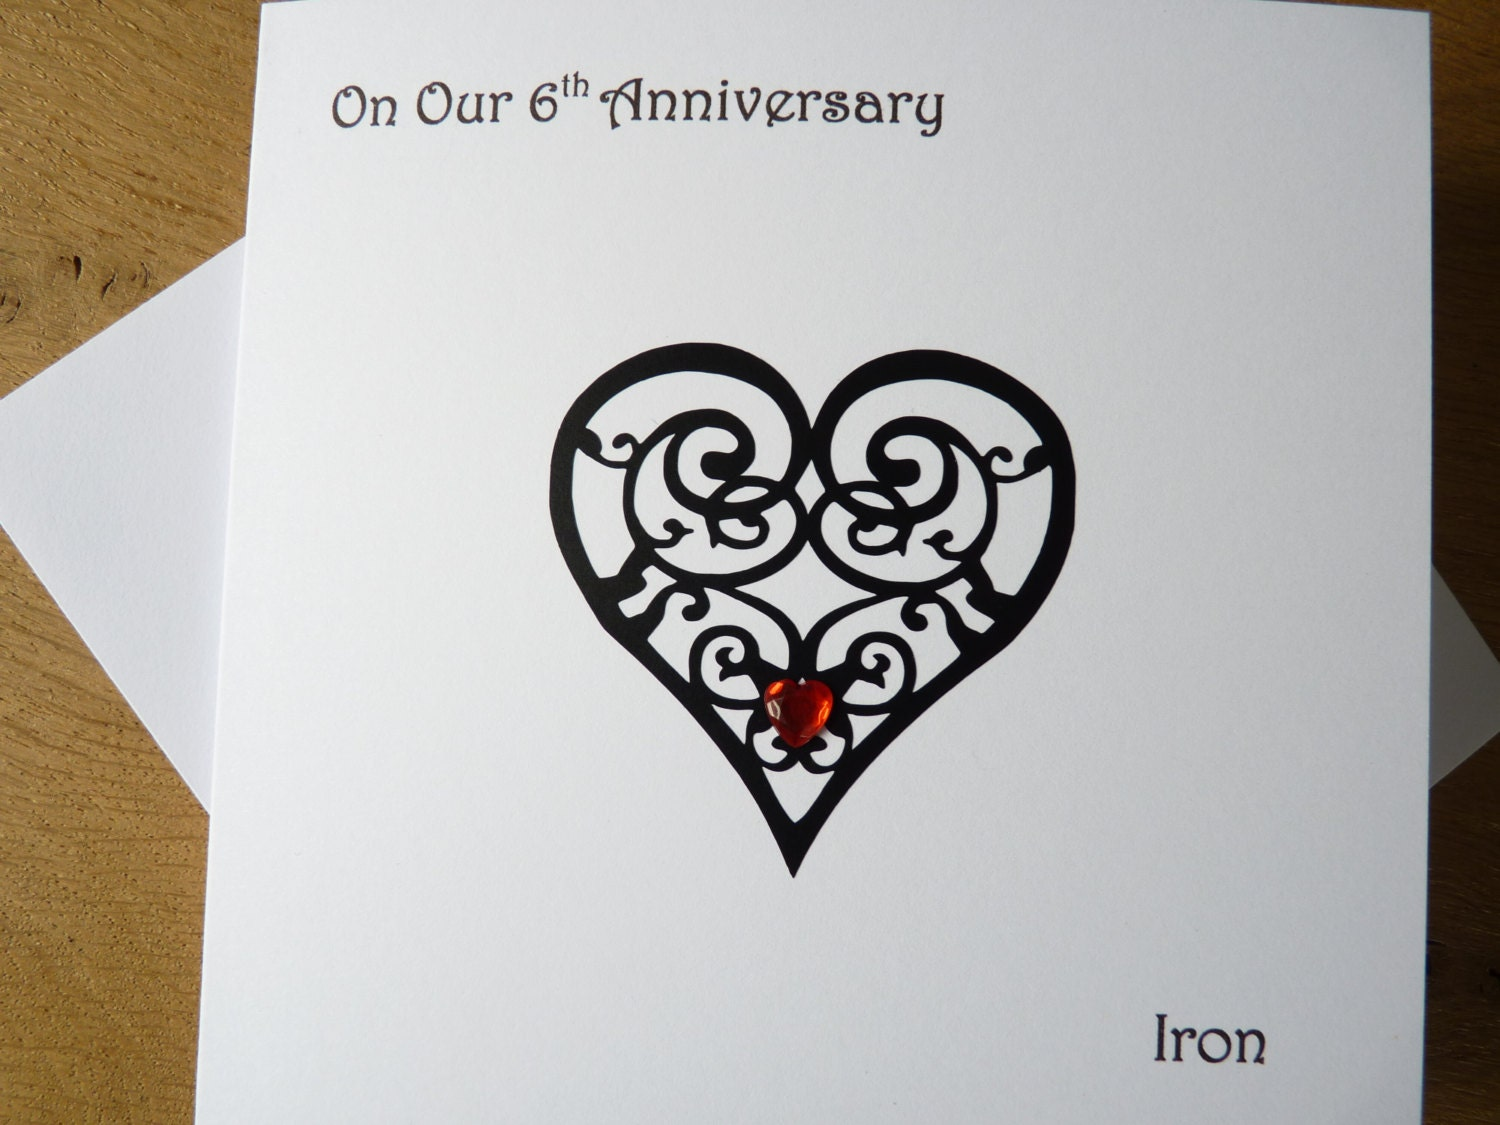 Sixth Wedding Anniversary Gift: 6th Wedding Anniversary Card Iron 6th Anniversary Gift